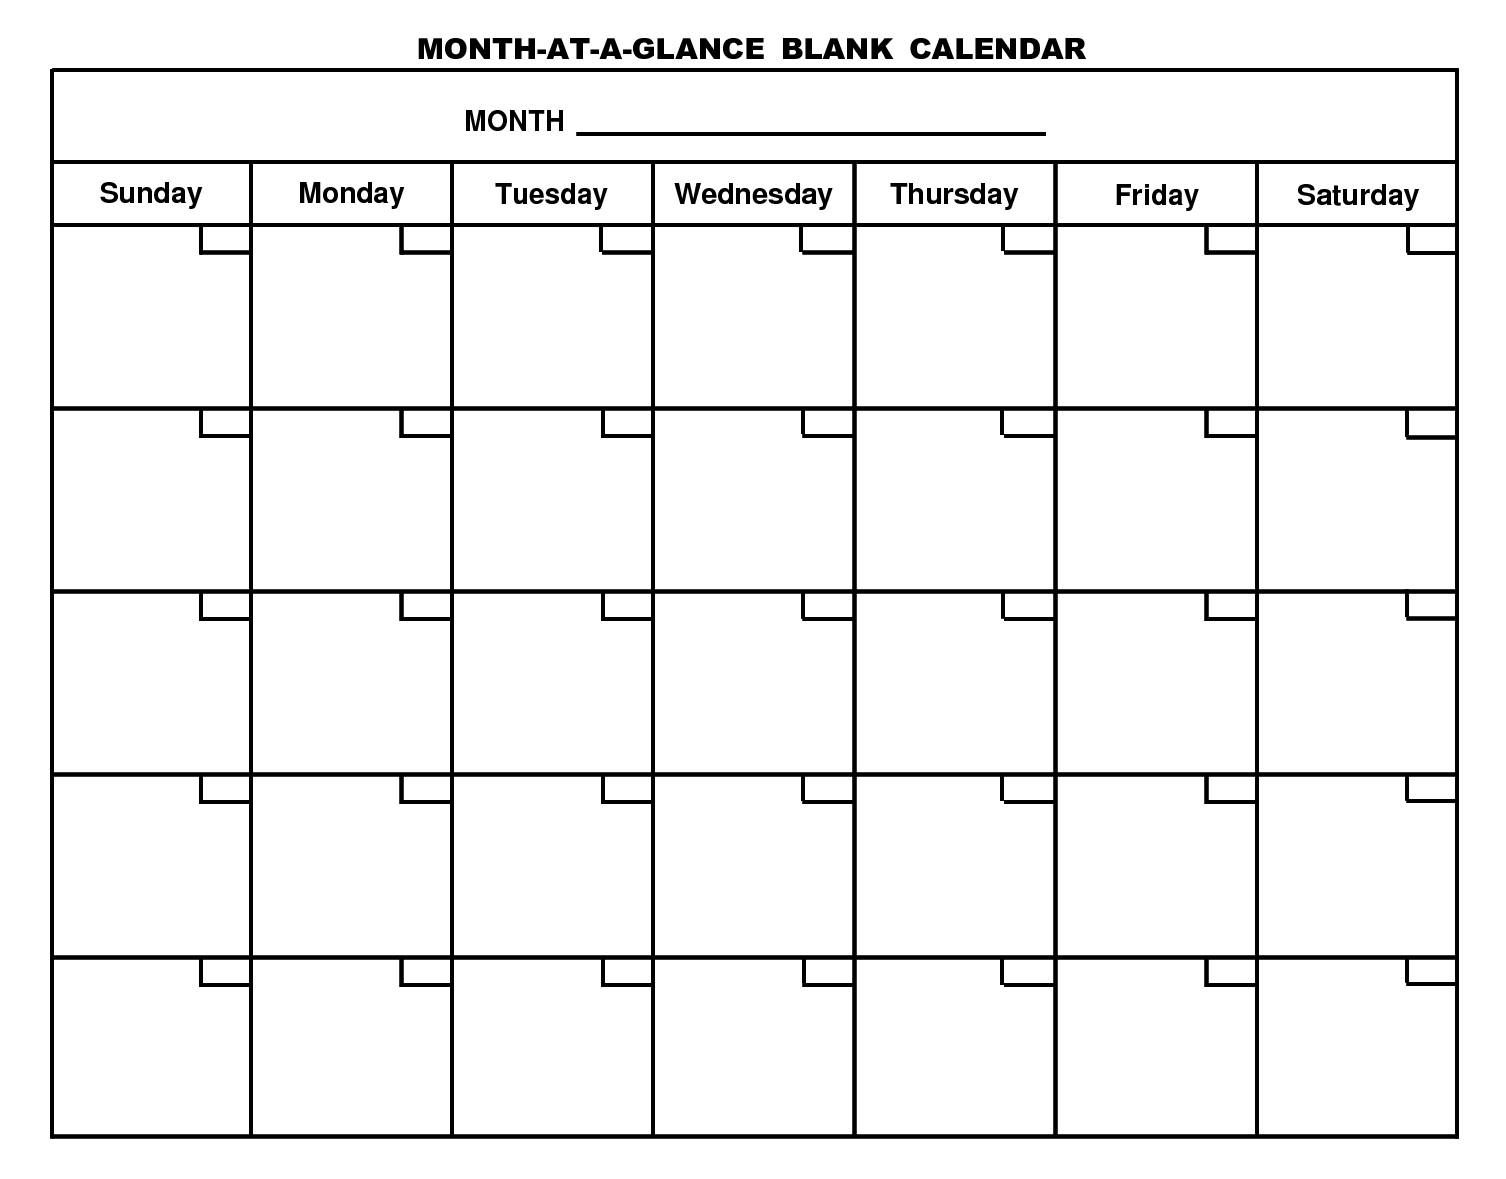 Blank Monthly Calendars Yahoo Search Results Umw Pinterest3abry